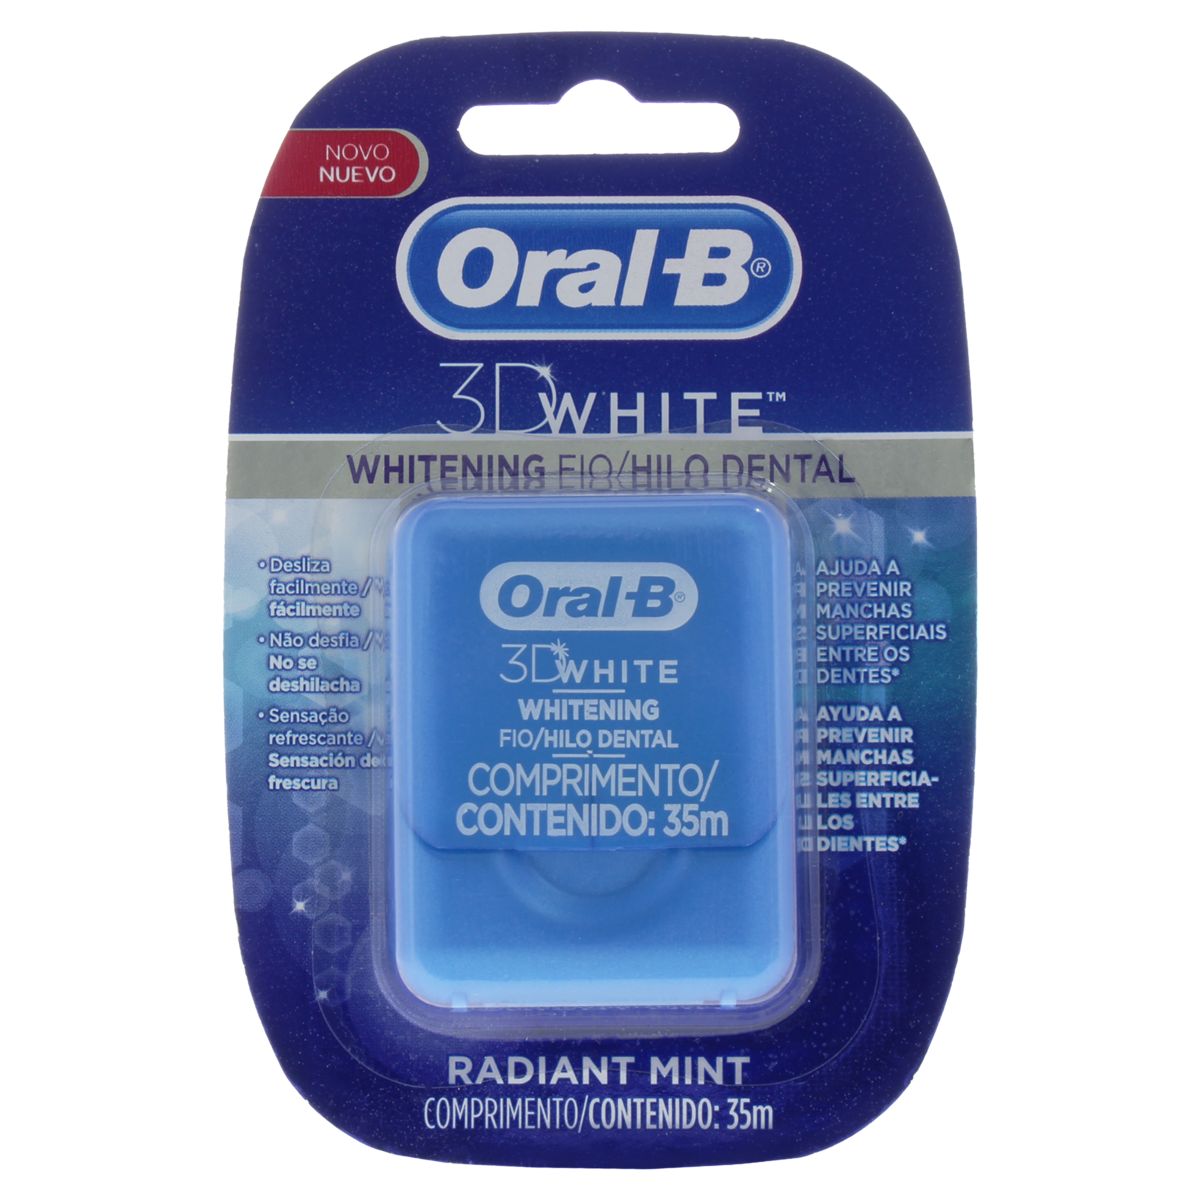 7506309855615 - FIO DENTAL RADIANT MINT ORAL-B 3D WHITE WHITENING 35M